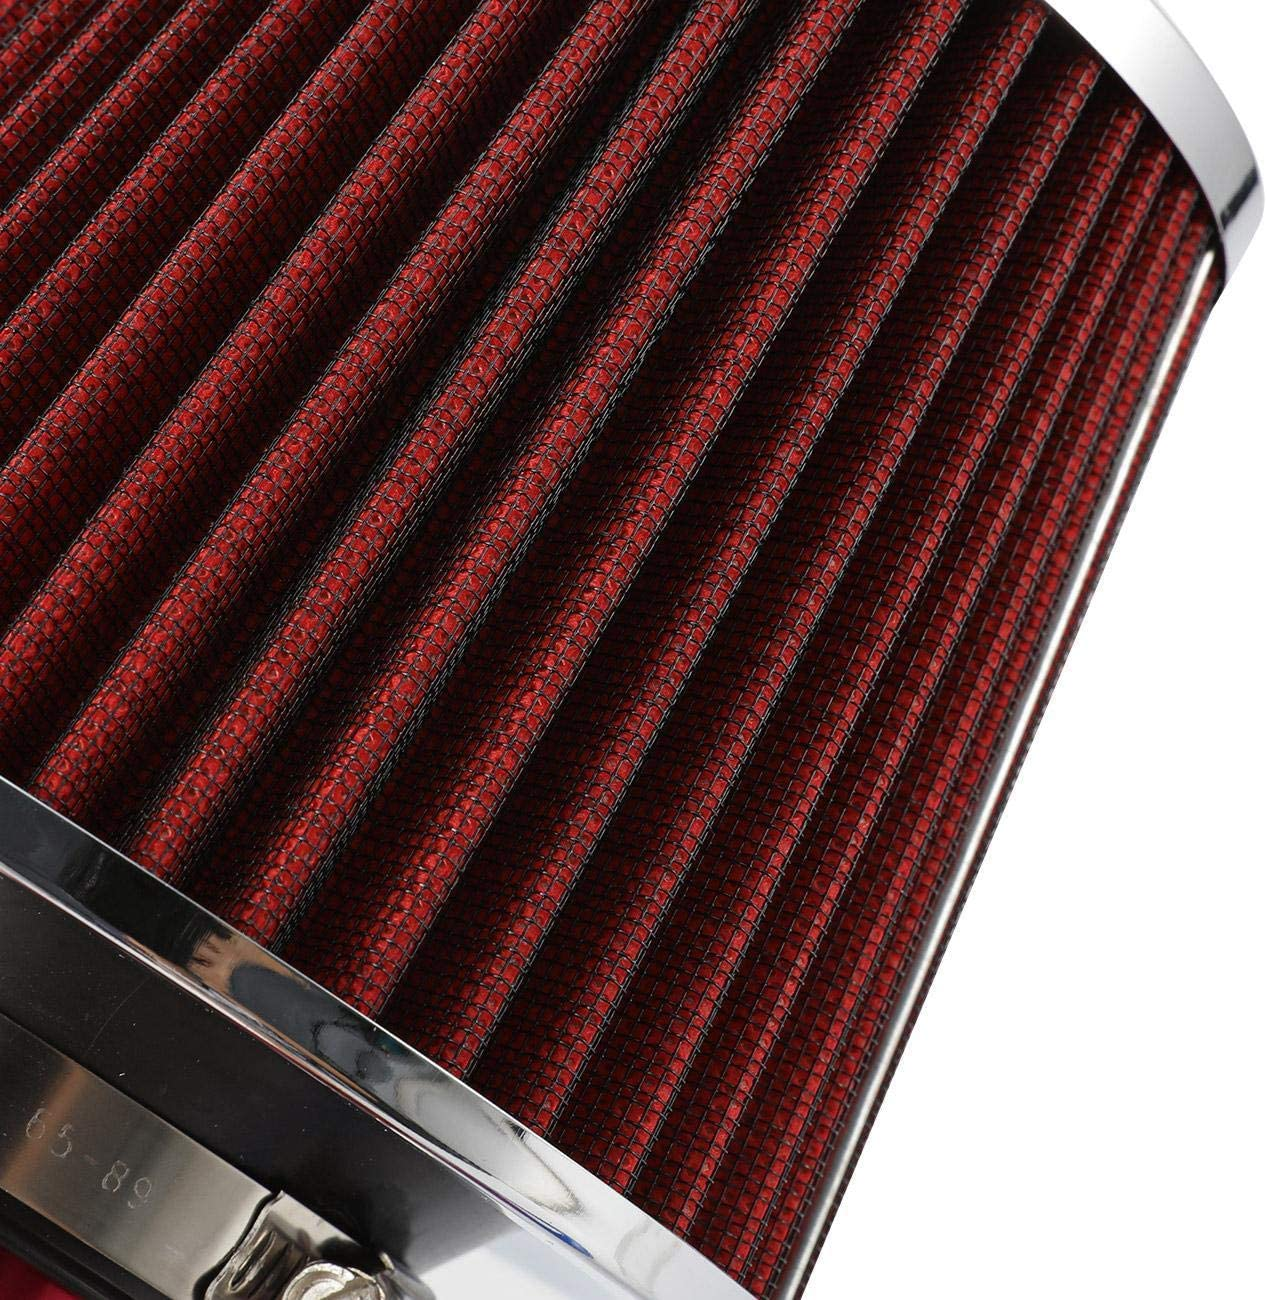 Red ALAVENTE Car Air Intake Kit Cool Air Intake Filter System 3 Inch Diameter Pipe with Low Hose and Clamp Kits